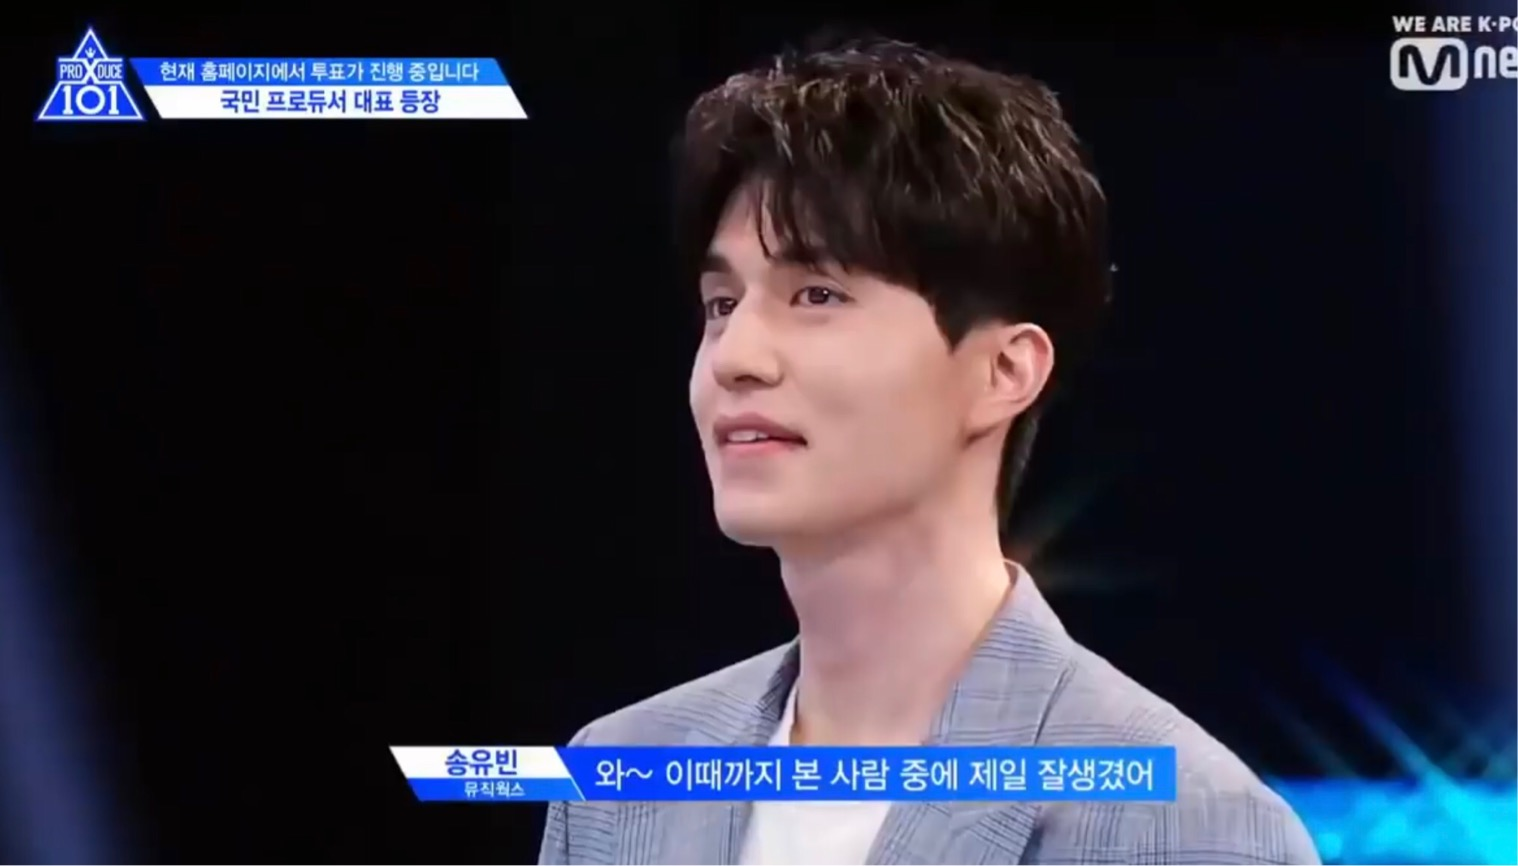 [K-Star]: Netizens Look Back onto Lee Dongwook's First Appearance on 'Produce X 101' With the Finales